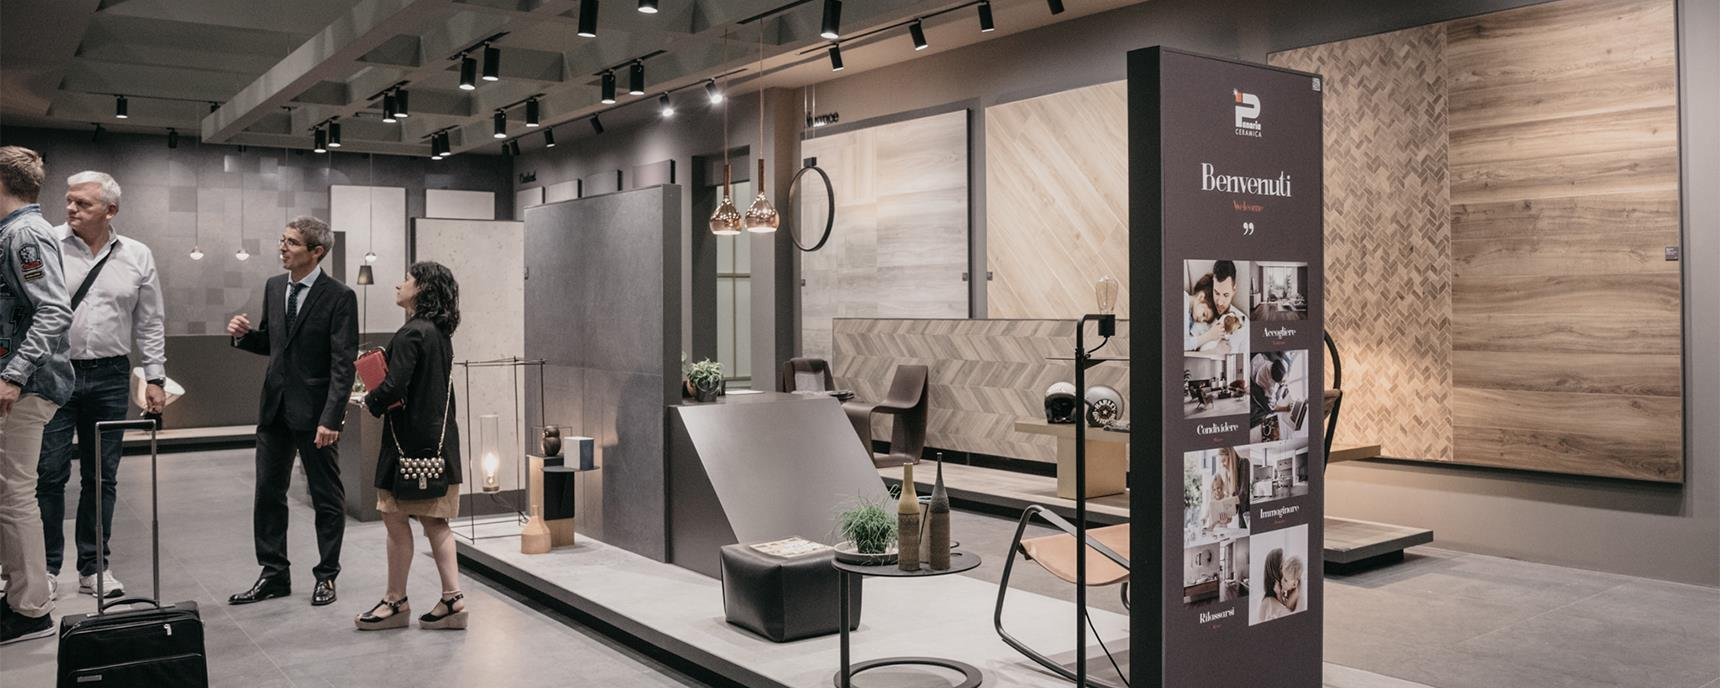 Panaria at Cersaie 2018